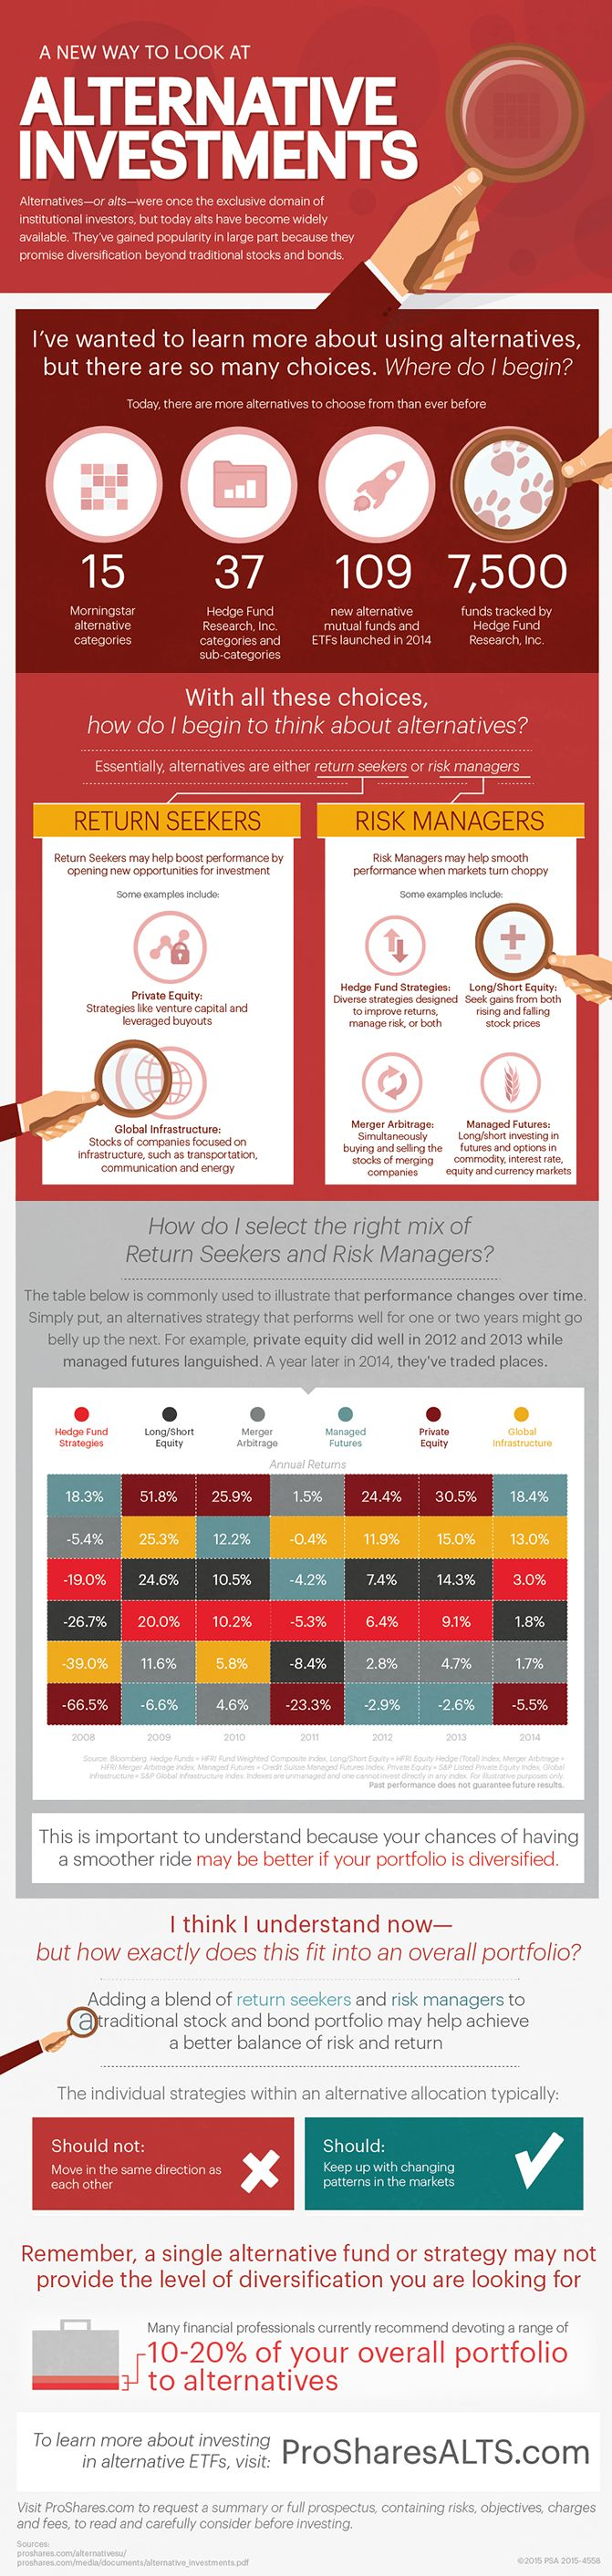 A New Way to Look at Alternative Investments #infographic #Investments #Finance #Business